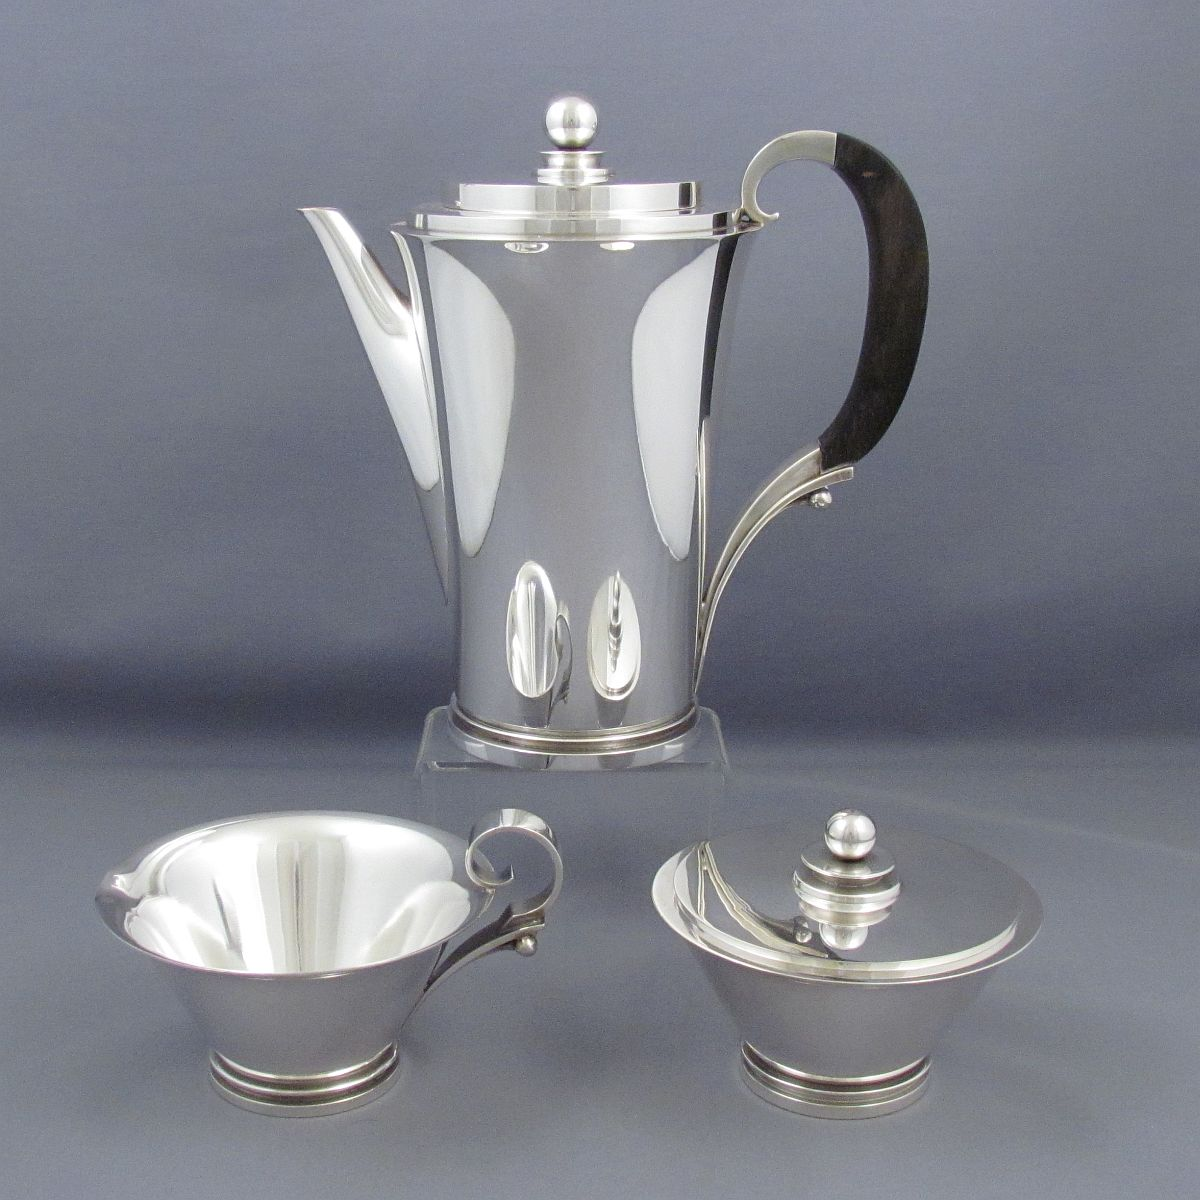 Pyramid pattern sterling silver coffee set, design #600A by Harald Nielsen 1930